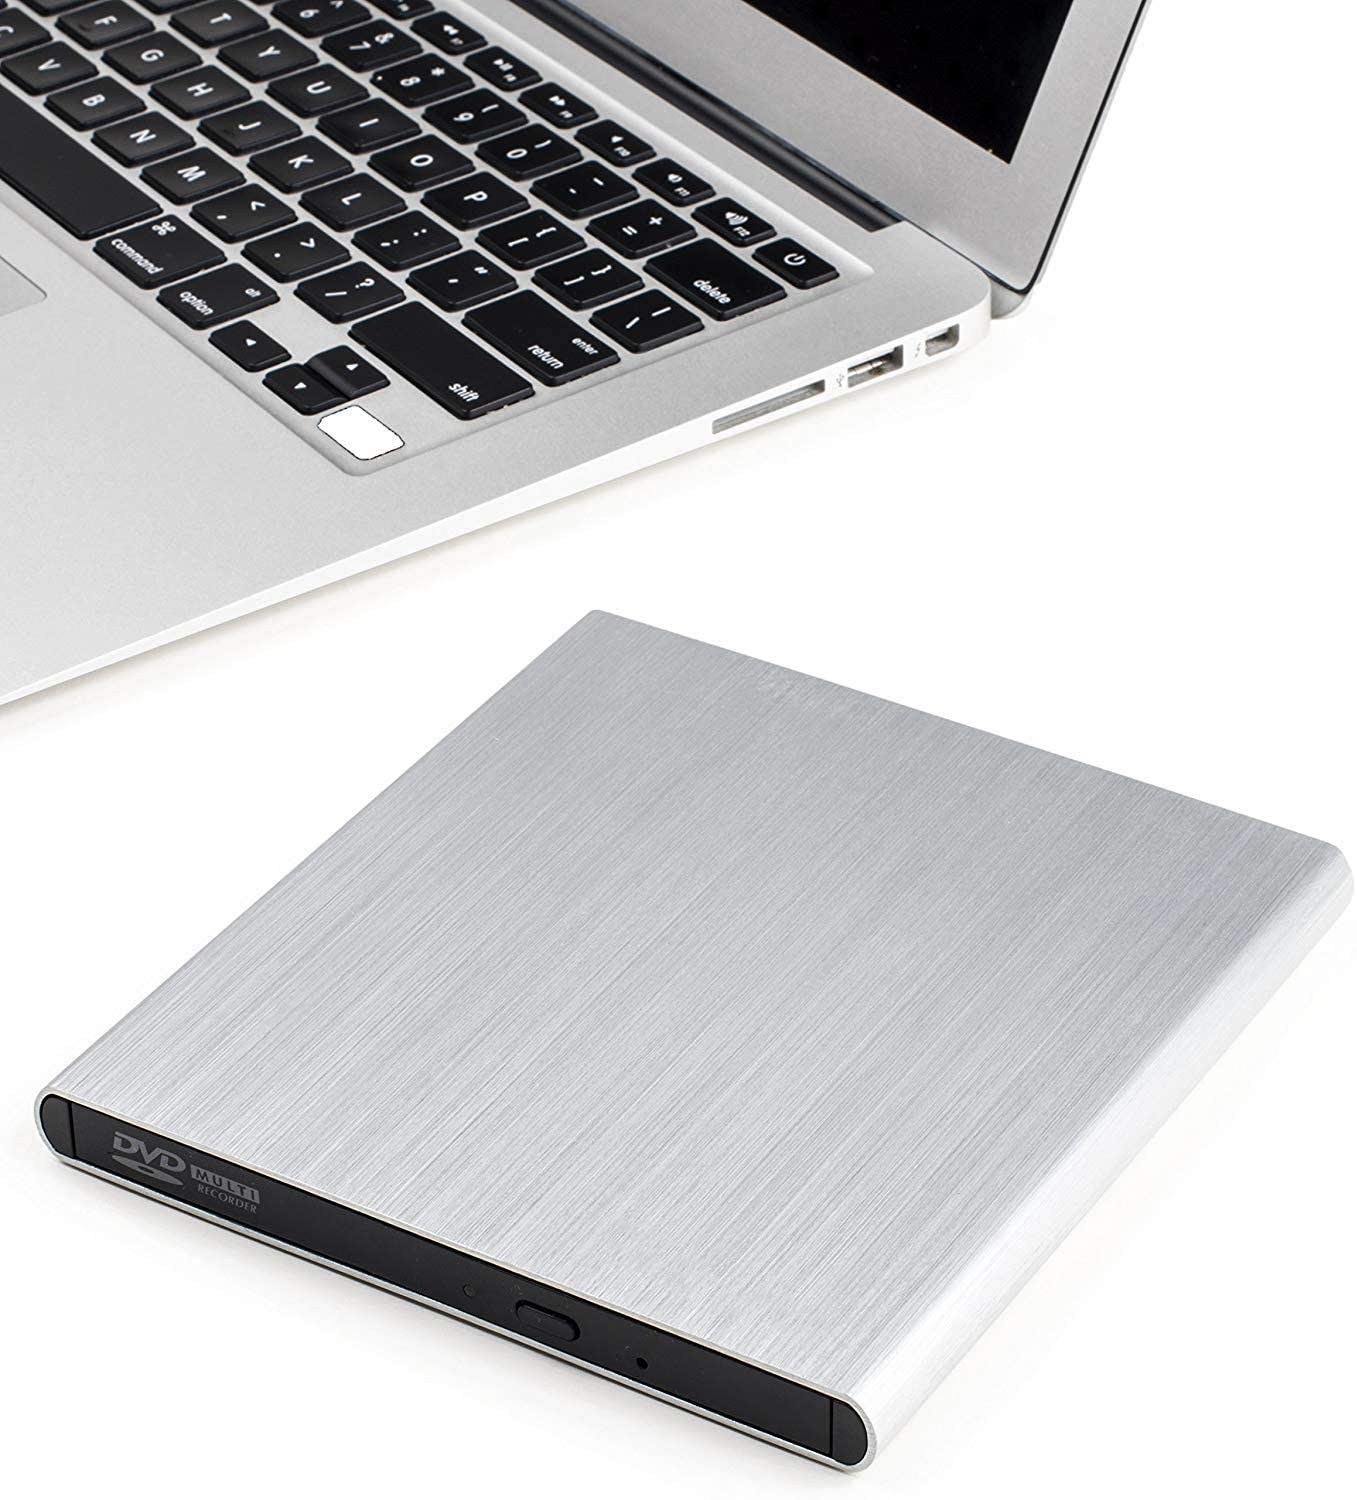 SEA TECH 1 Archgon Aluminum External USB DVD+Rw, RW Super Drive for Apple-MacBook Air, Pro, iMac, Mini